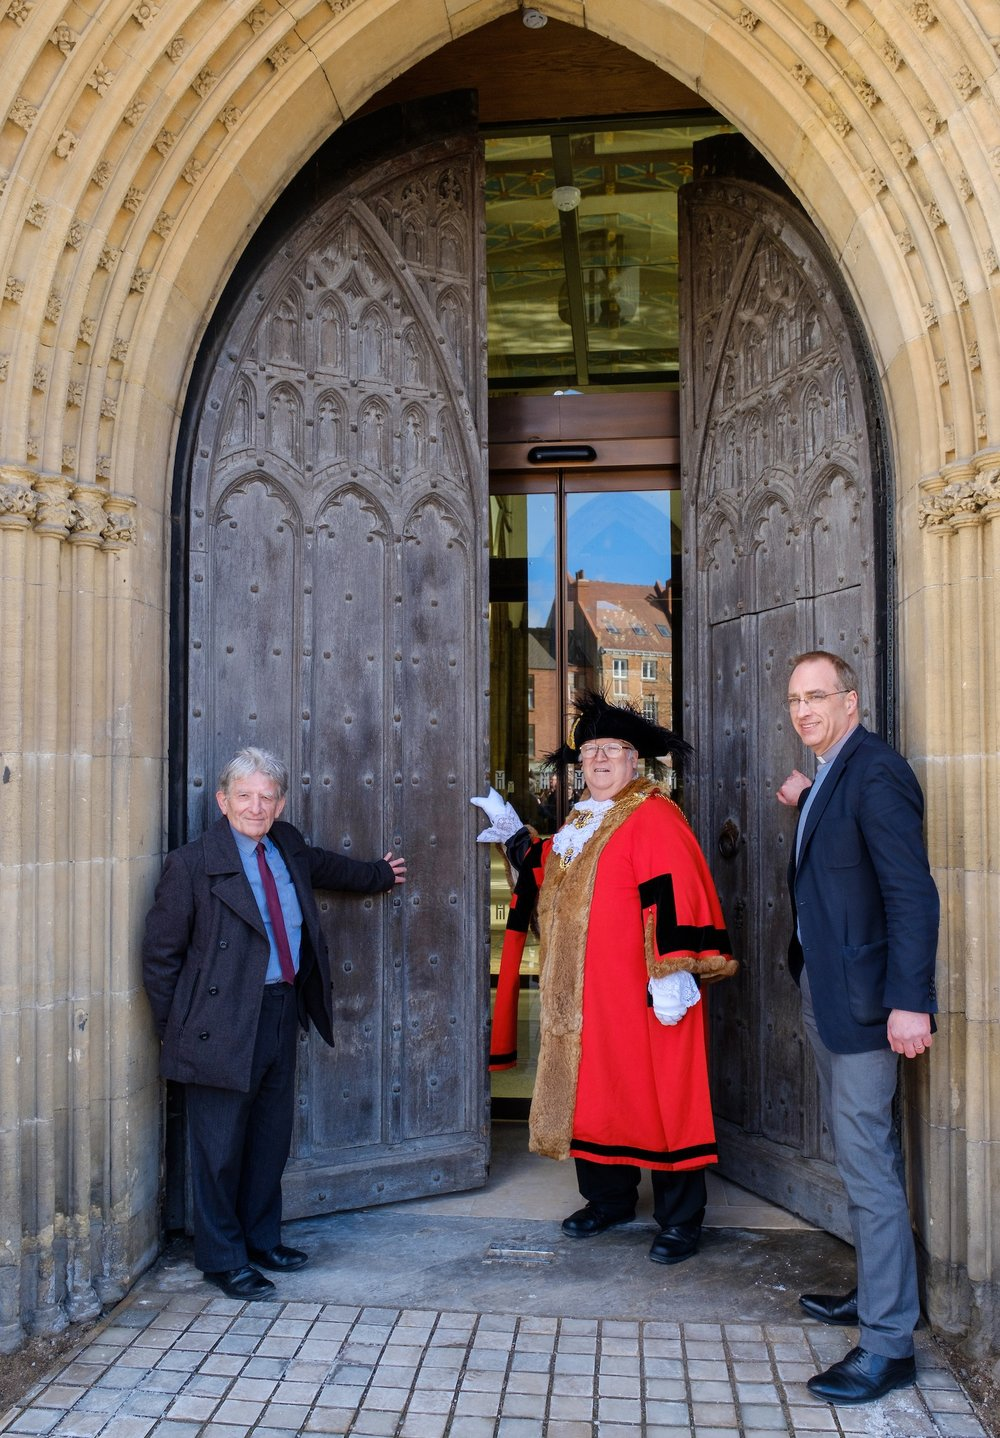 The Lord Mayor of Hull, Councillor John Hewitt, became the first person to enter following the re-opening of Hull Minster's West Doors by city council Leader Steve Brady and Vicar Neal Barnes.